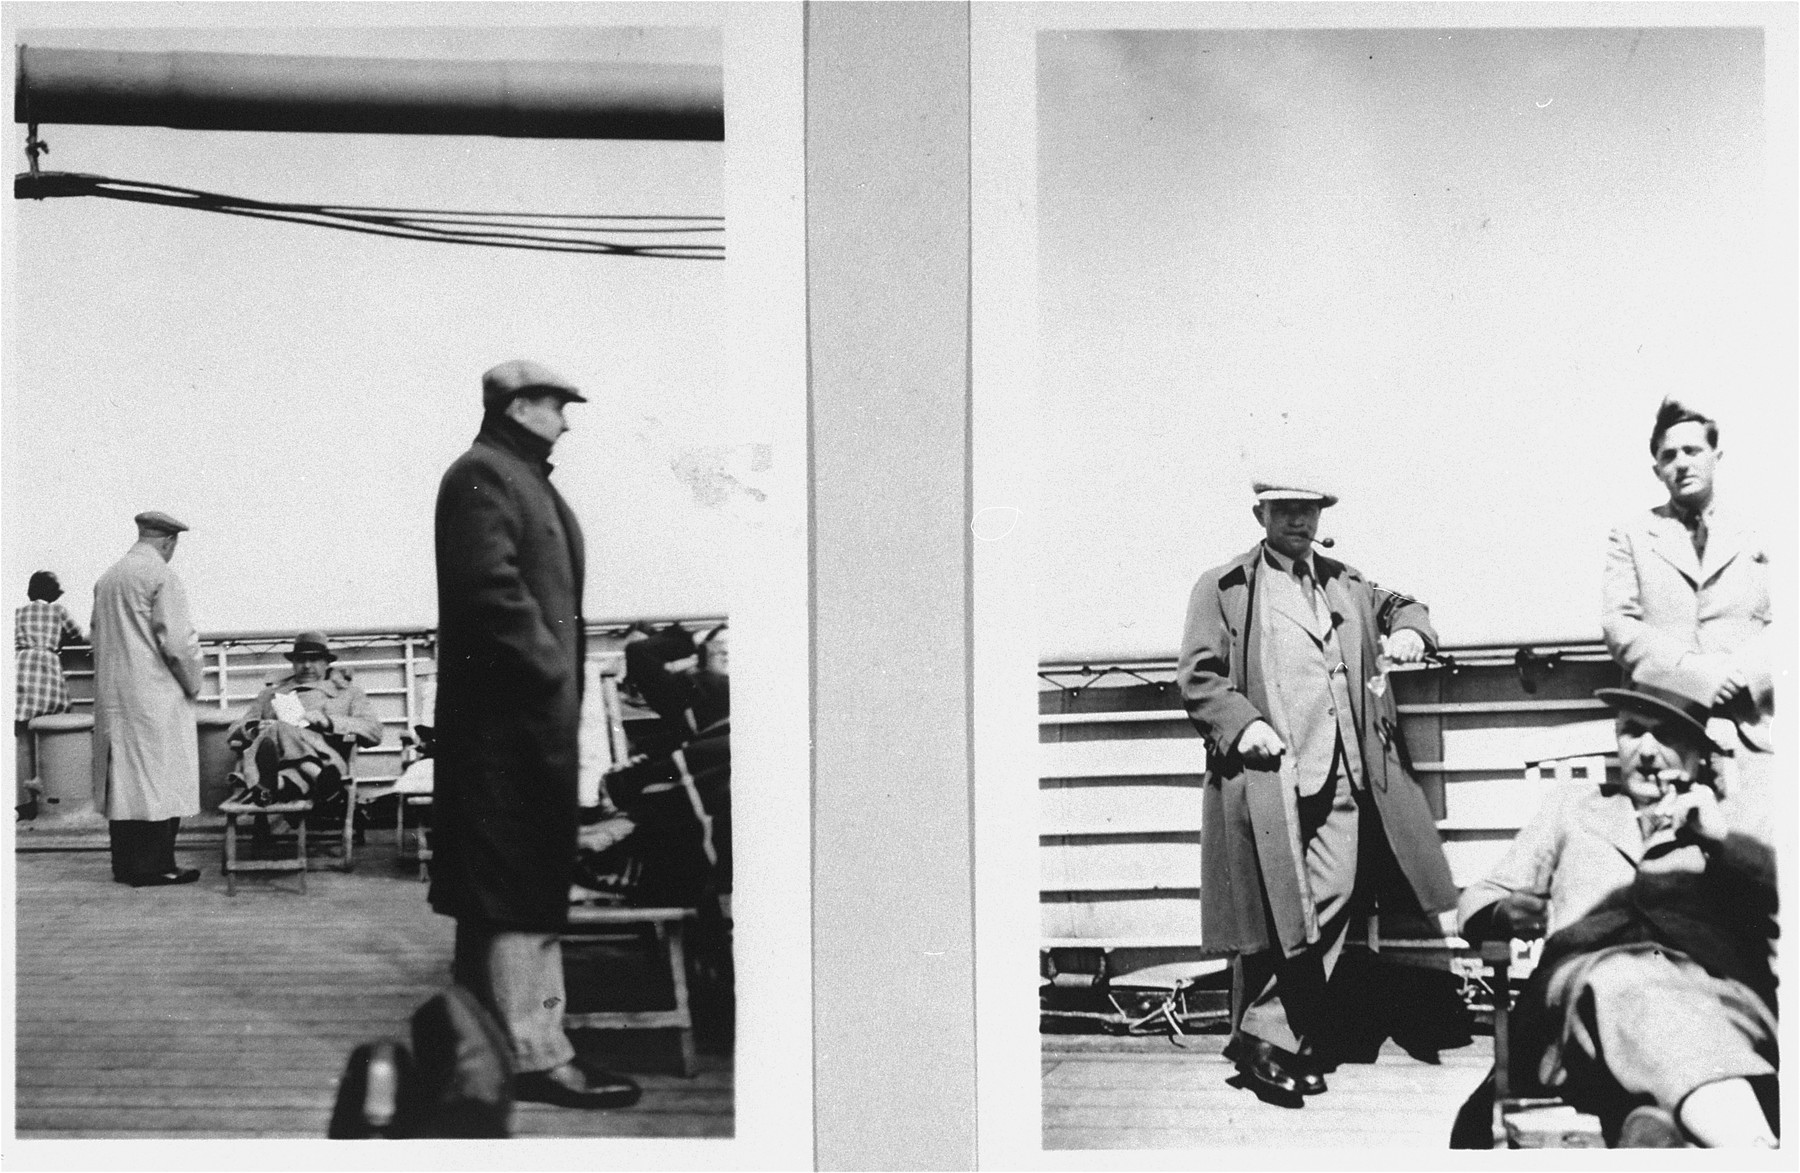 Passengers on the deck of the refugee ship MS St. Louis.     From a photo album belonging to St. Louis passenger Moritz Schoenberger.